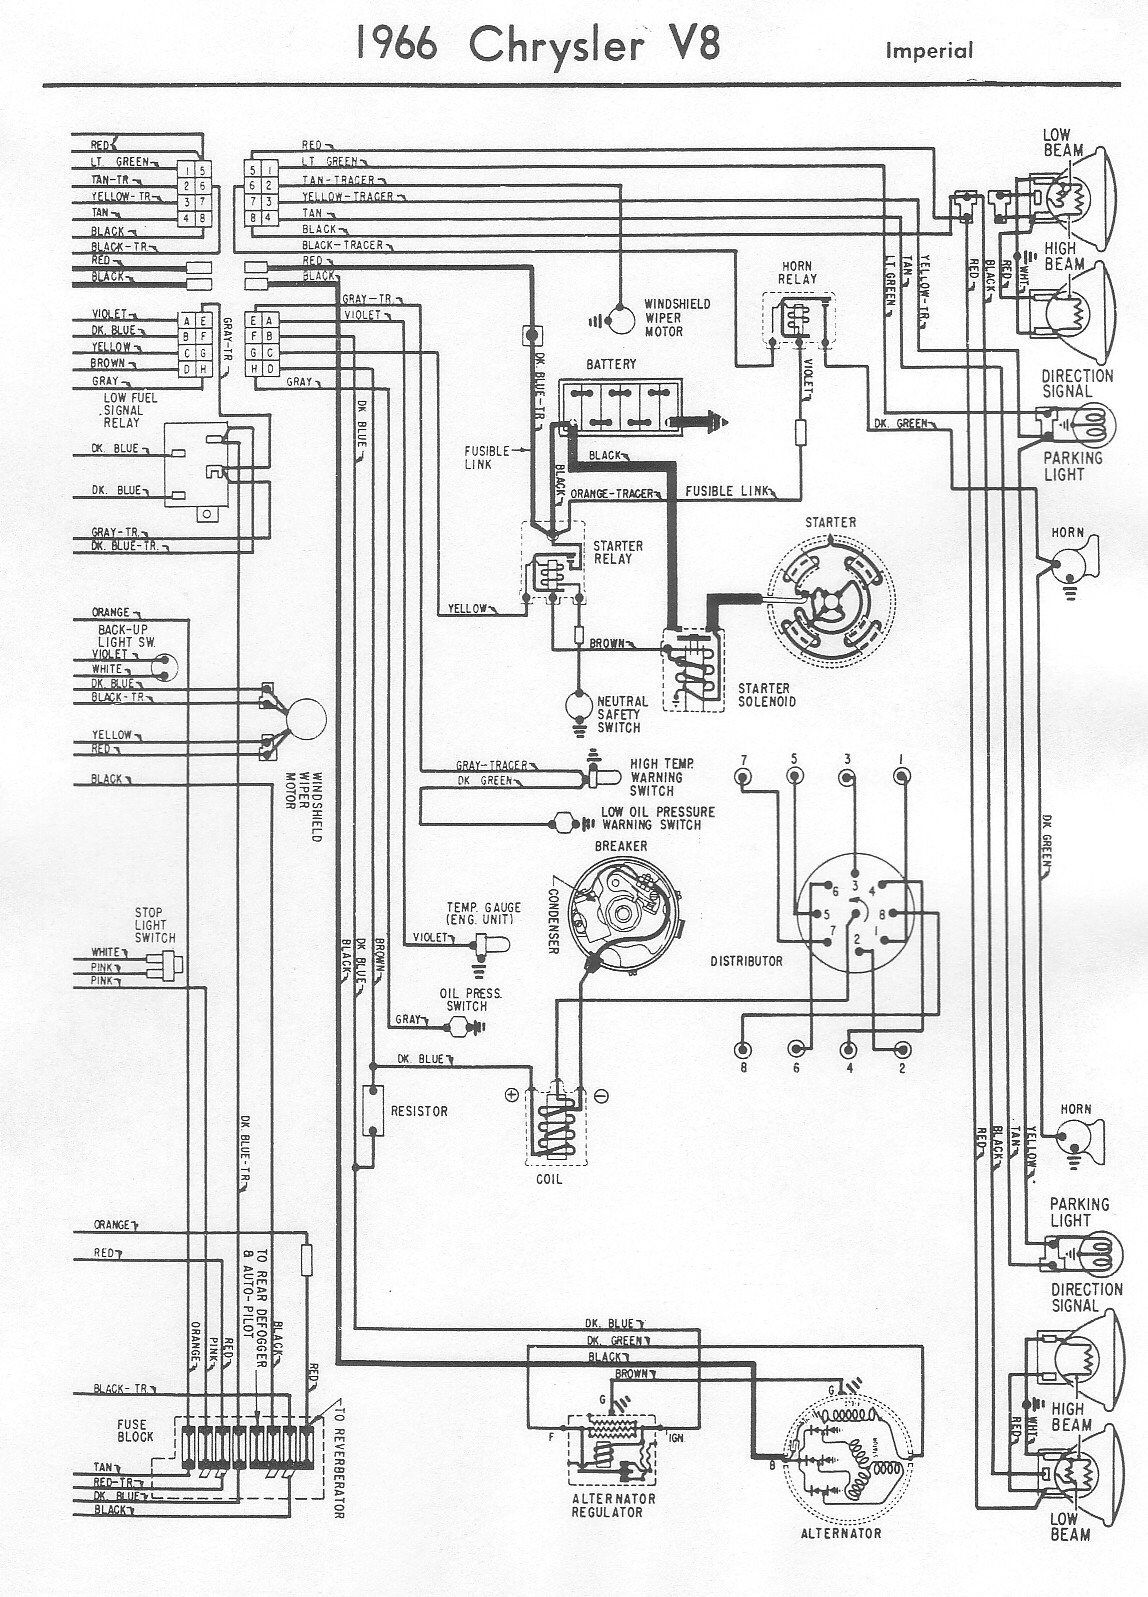 85 camaro dash wiring diagram schematic auto electrical wiring diagram rh  semanticscholar org uk edu bitoku me 1985 camaro fuse box diagram 1985  chevy ...